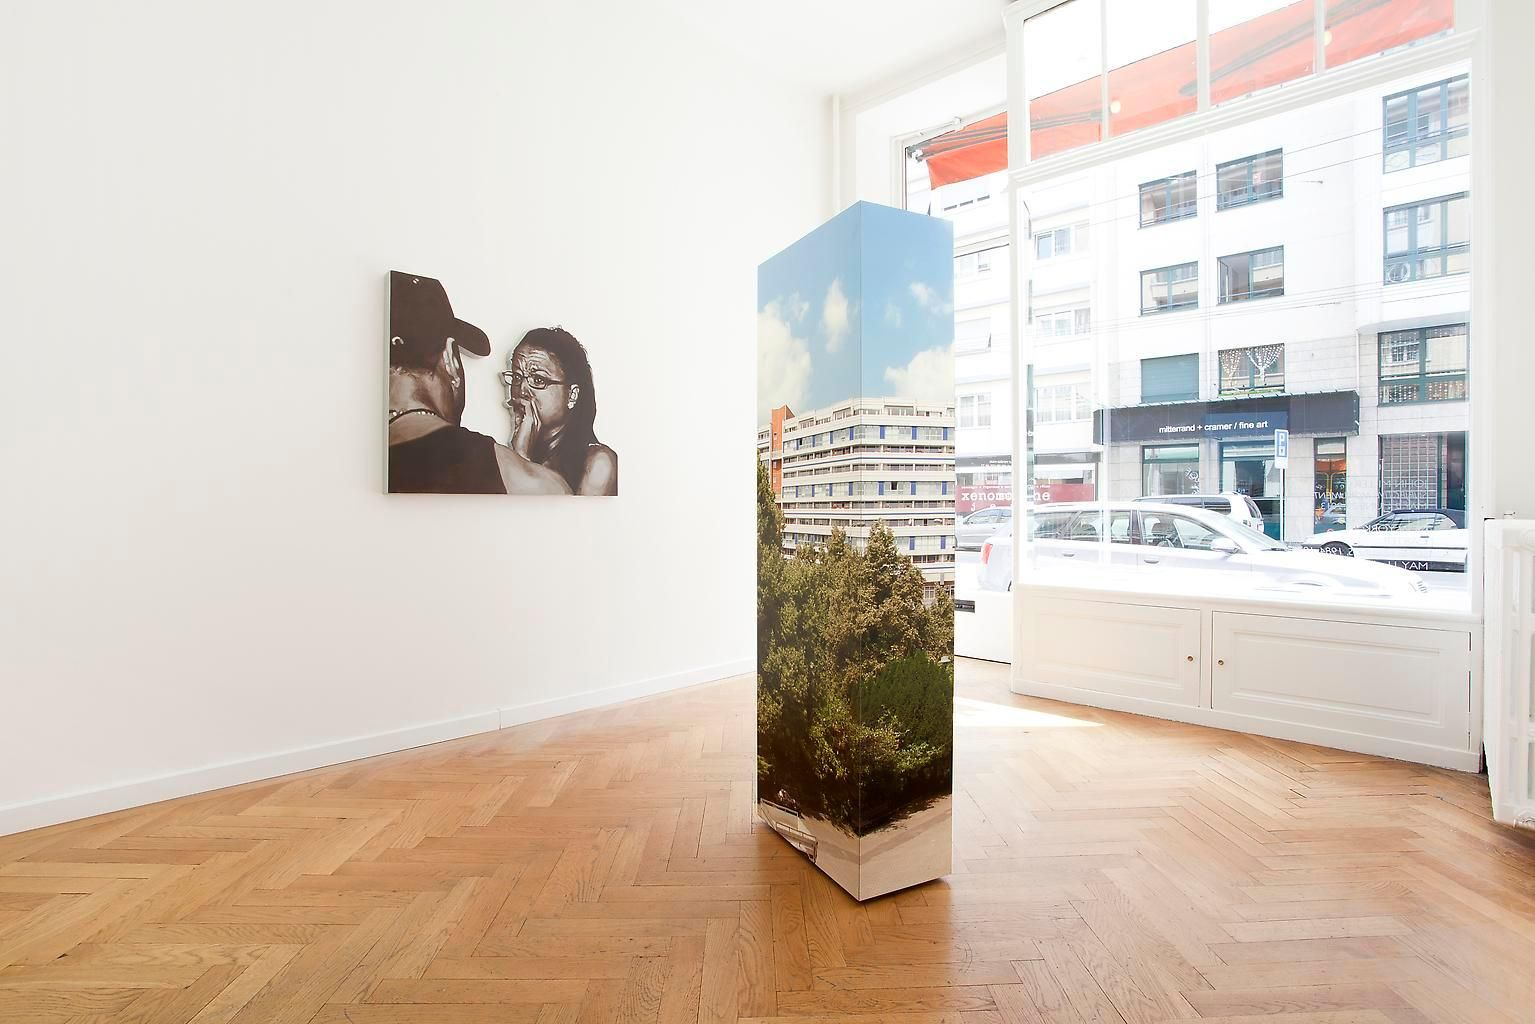 Installation view, John Miller, Subjective Monuments, Marc Jancou, Genvas, May 2 - July 27, 2013